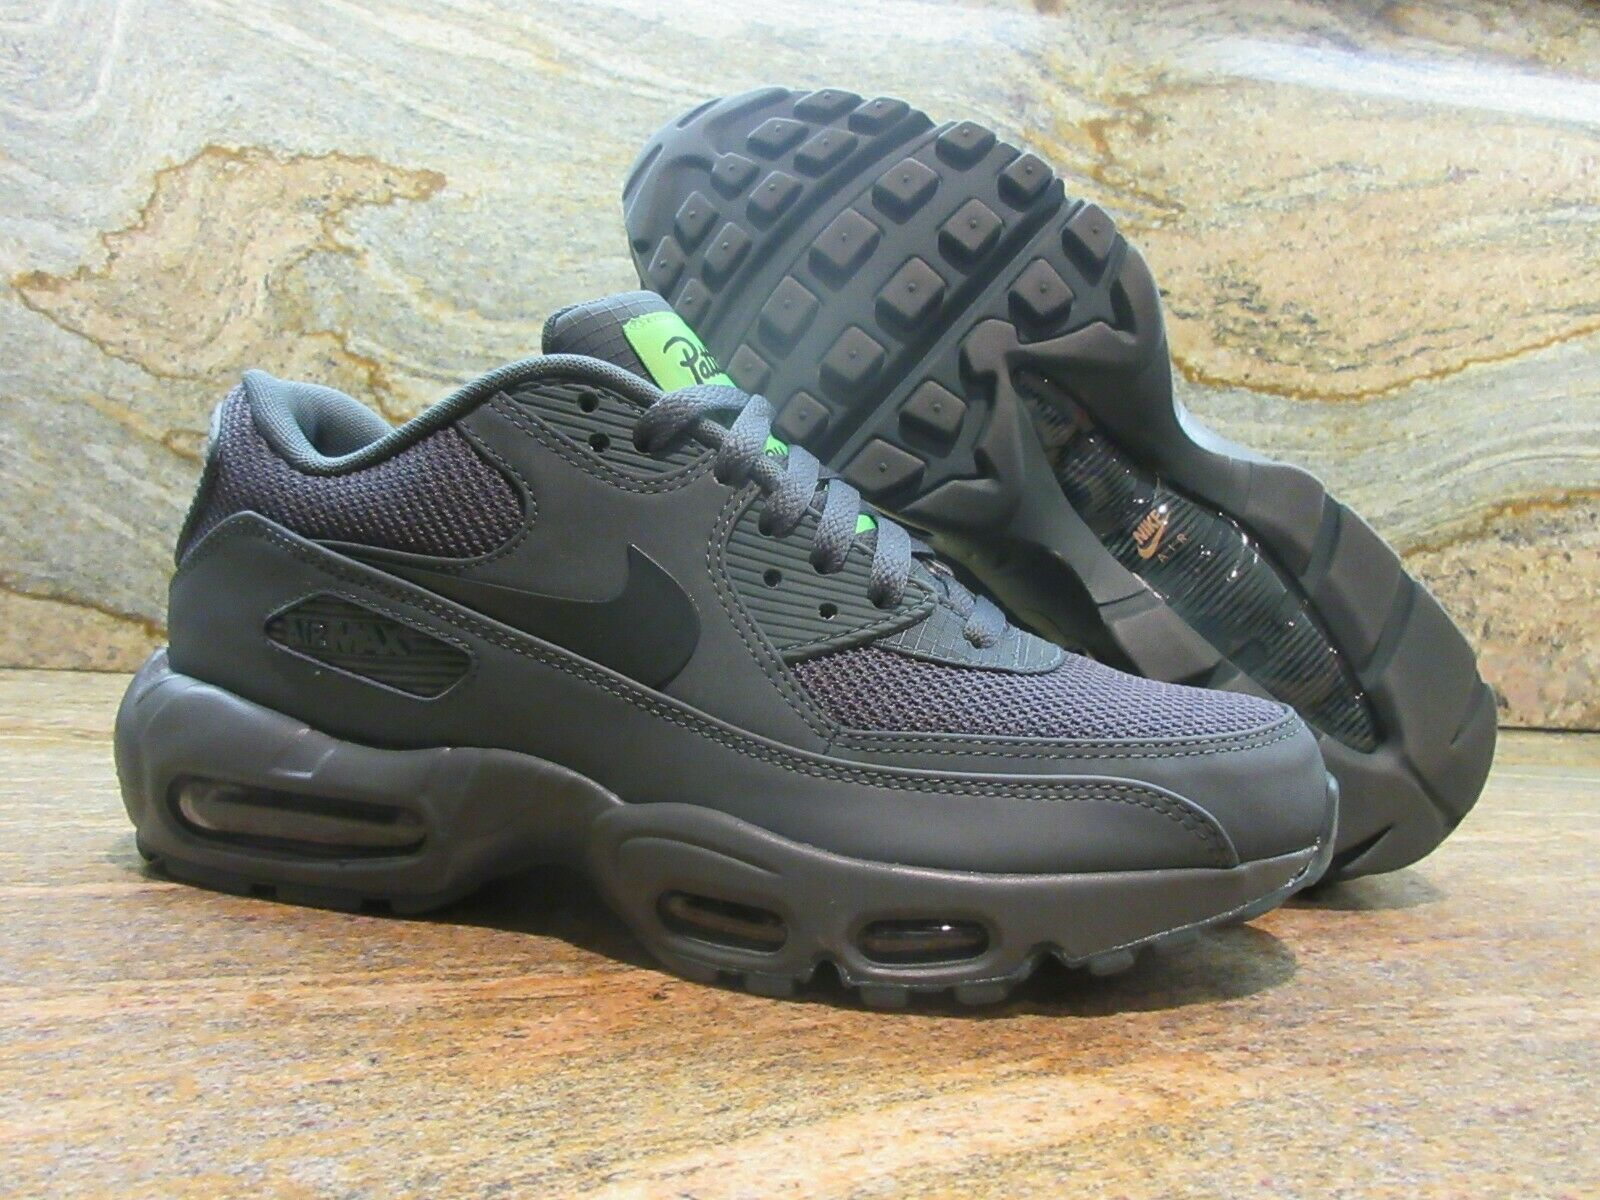 wholesale dealer 40015 e07e7 ... 2019 Nike Air 95 90 Hybrid iD Patta Patta Patta shoes SZ 9 Premium  Sample By ...